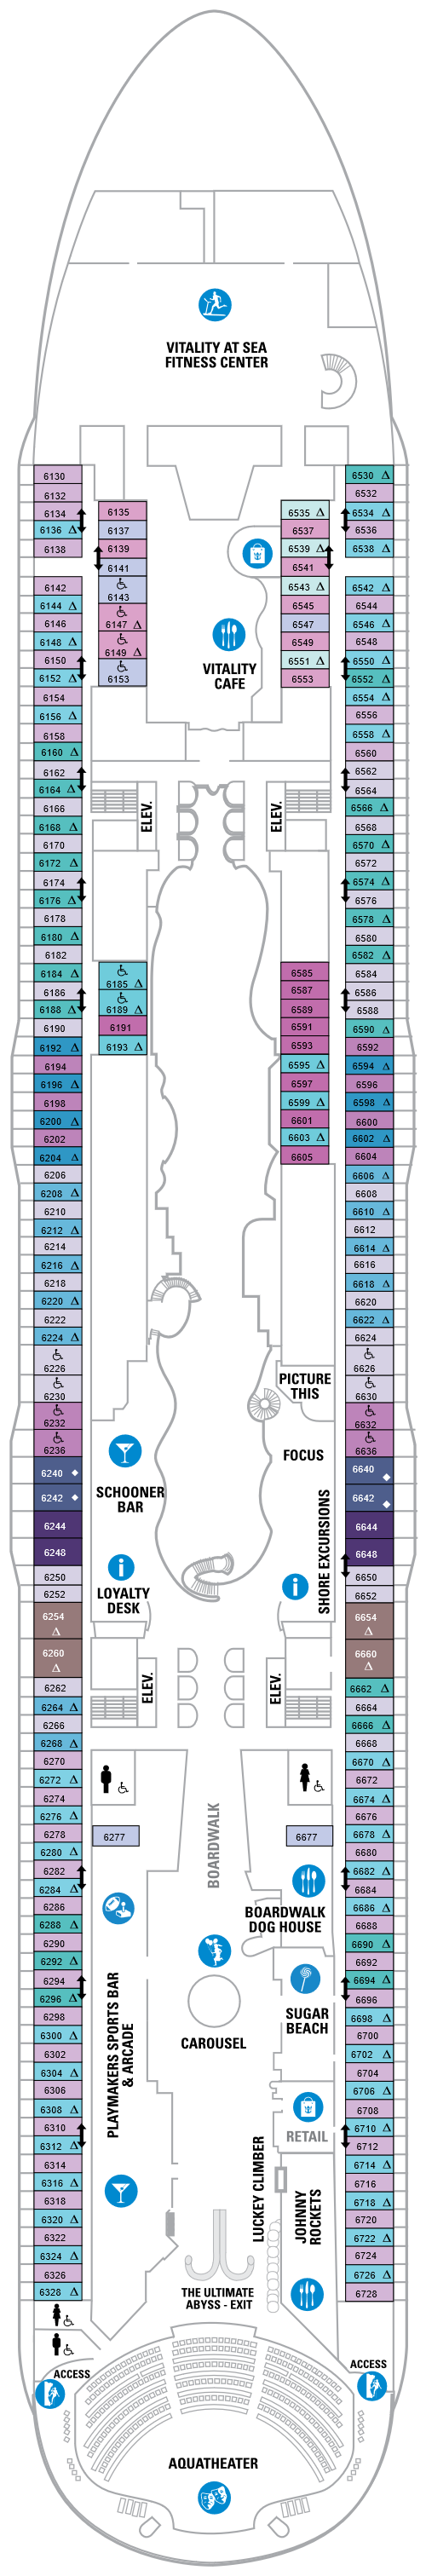 Symphony Of The Seas Deck 6 layout